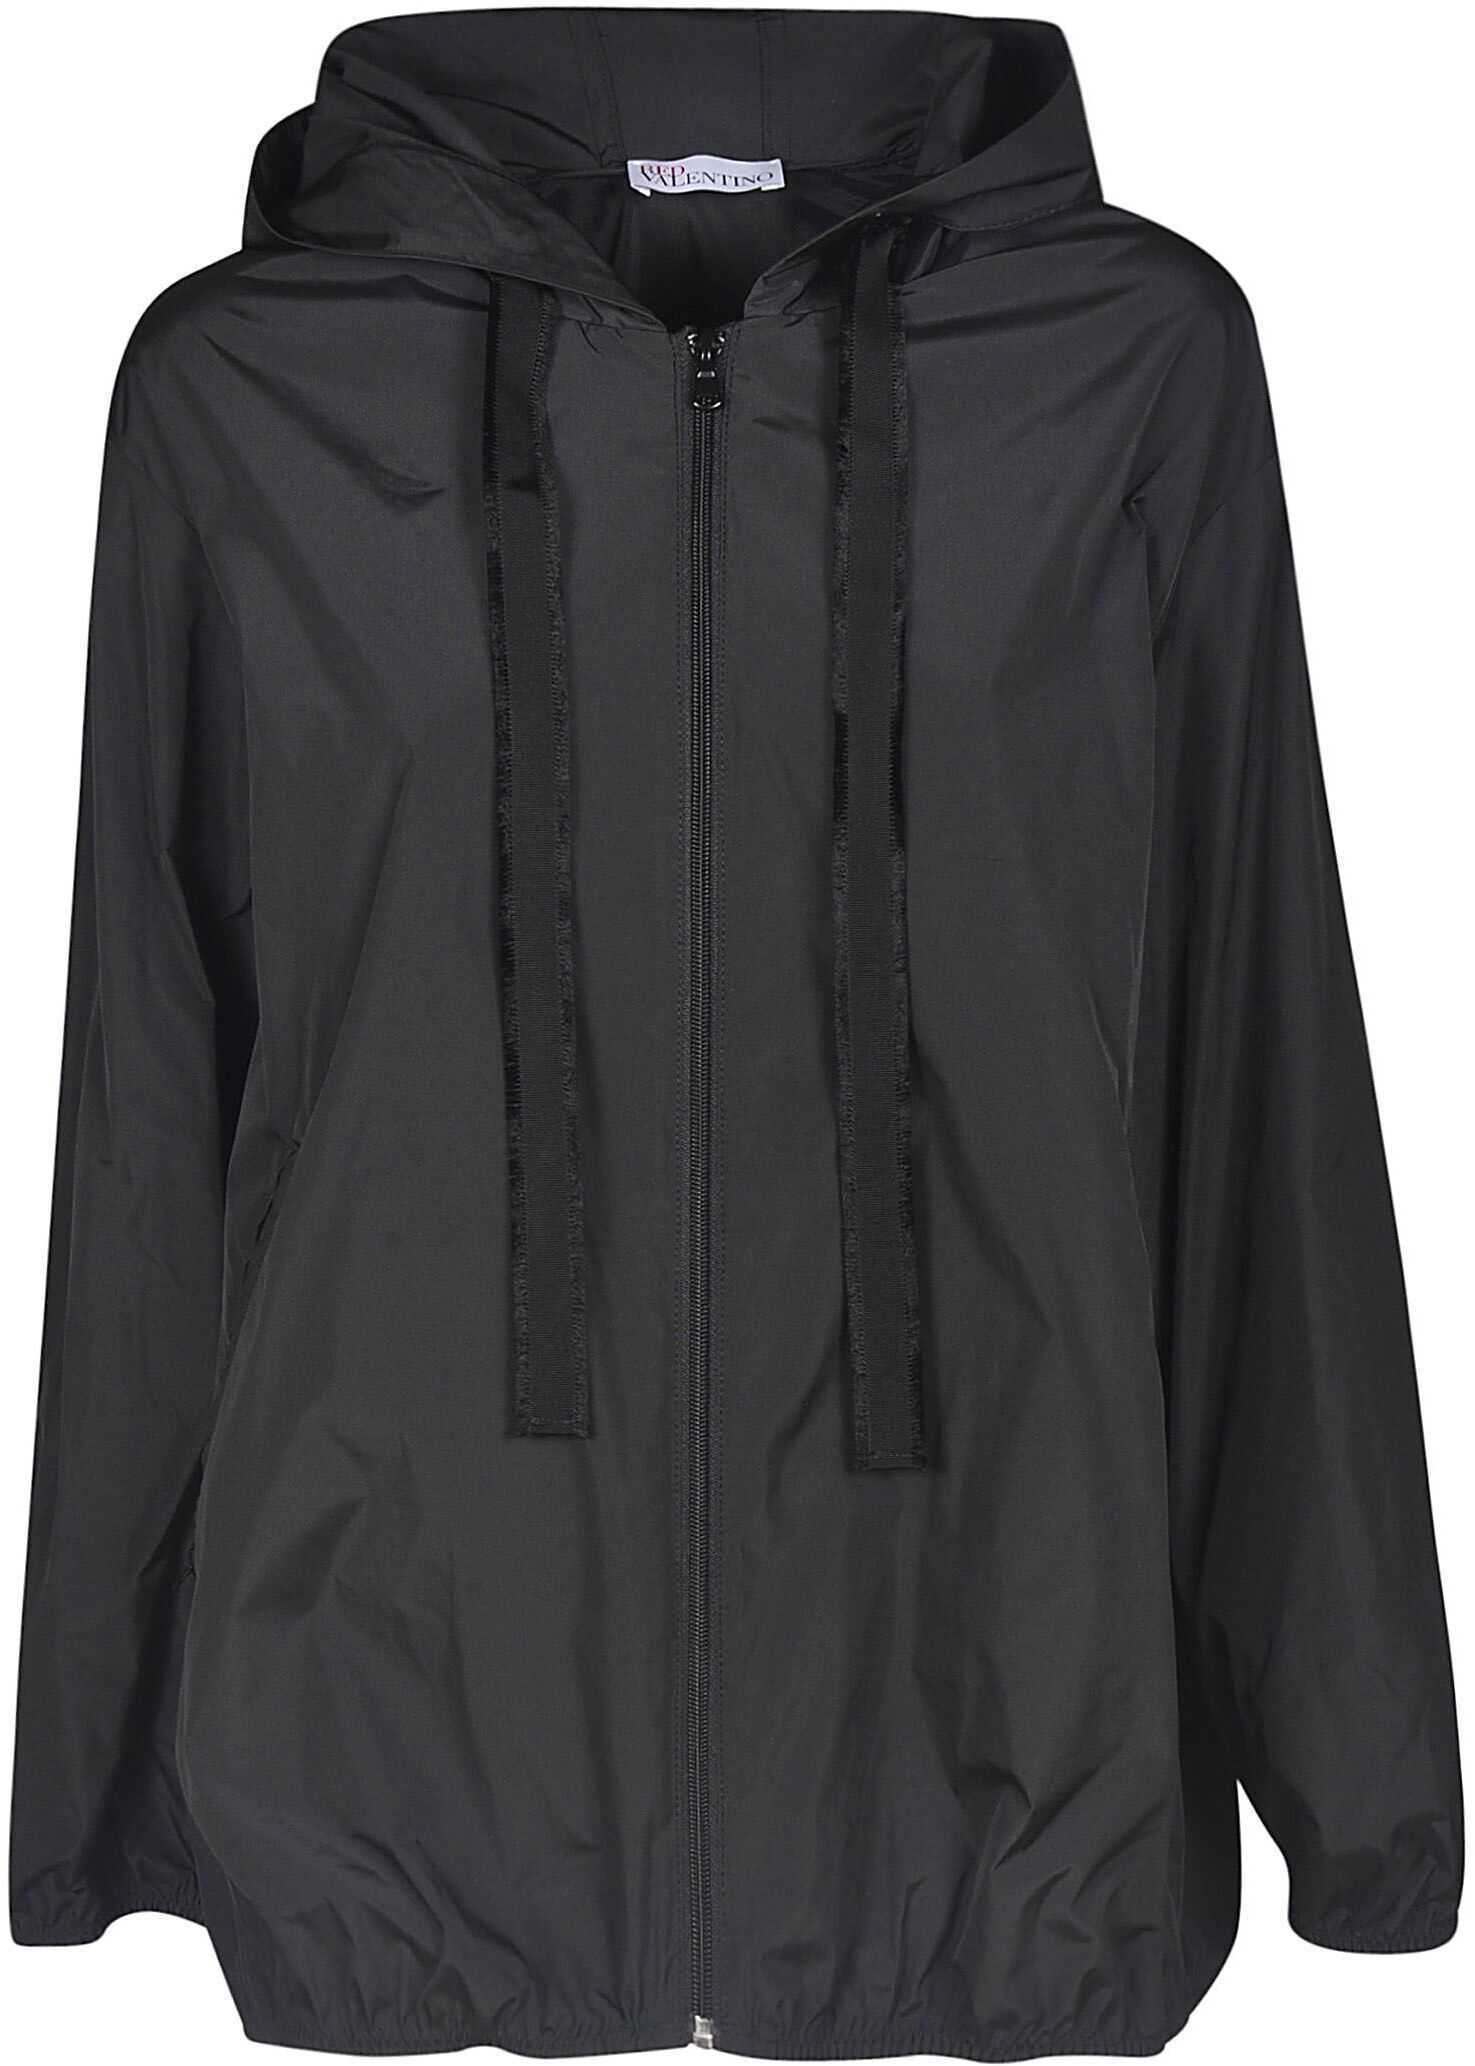 RED VALENTINO Polyester Outerwear Jacket BLACK